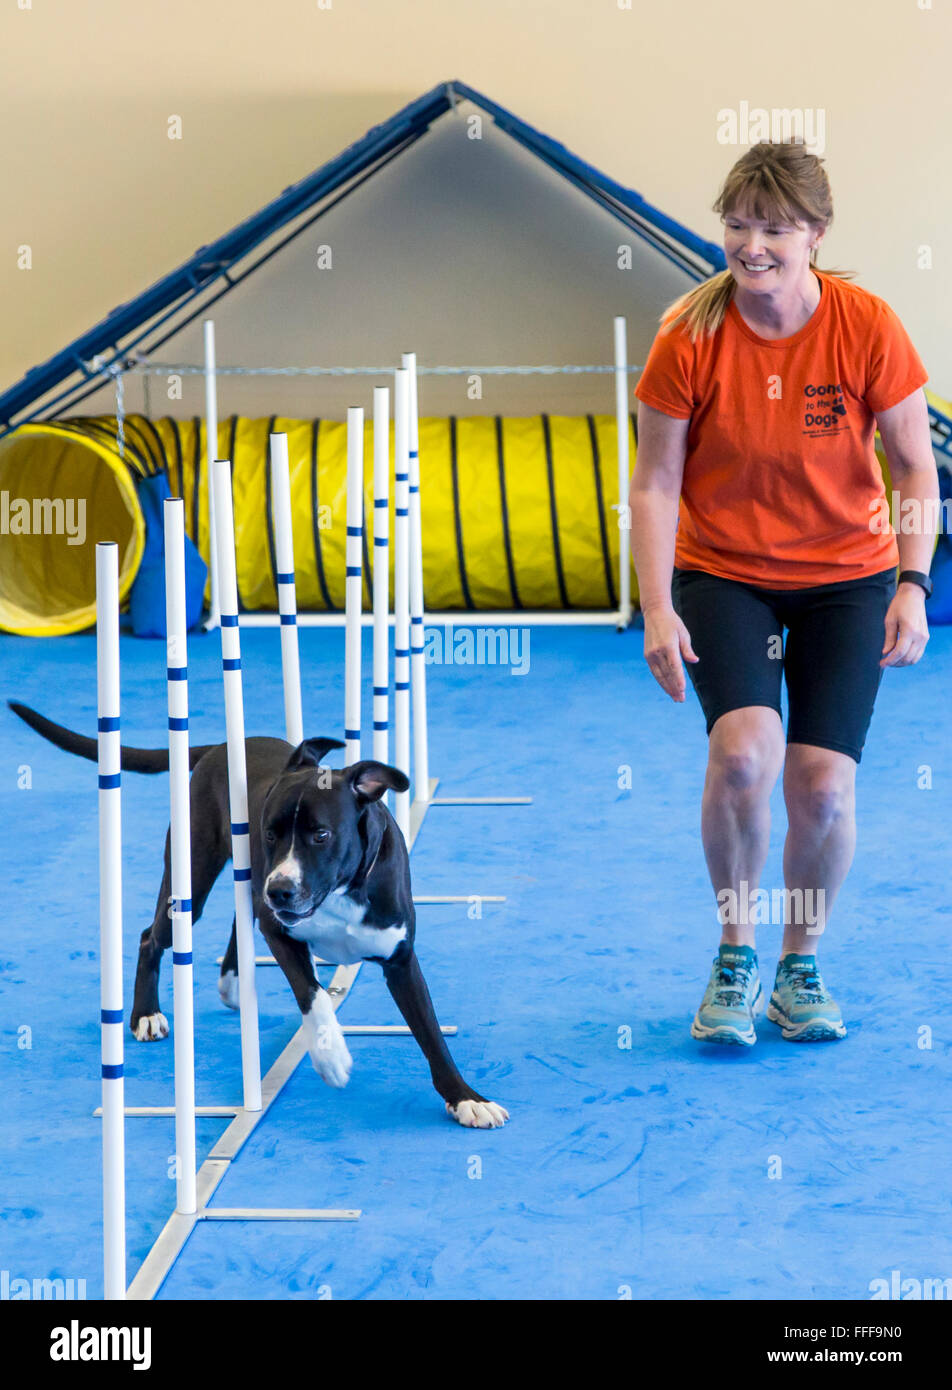 Professional female dog handler training dog to run through slalom obstacle course - Stock Image